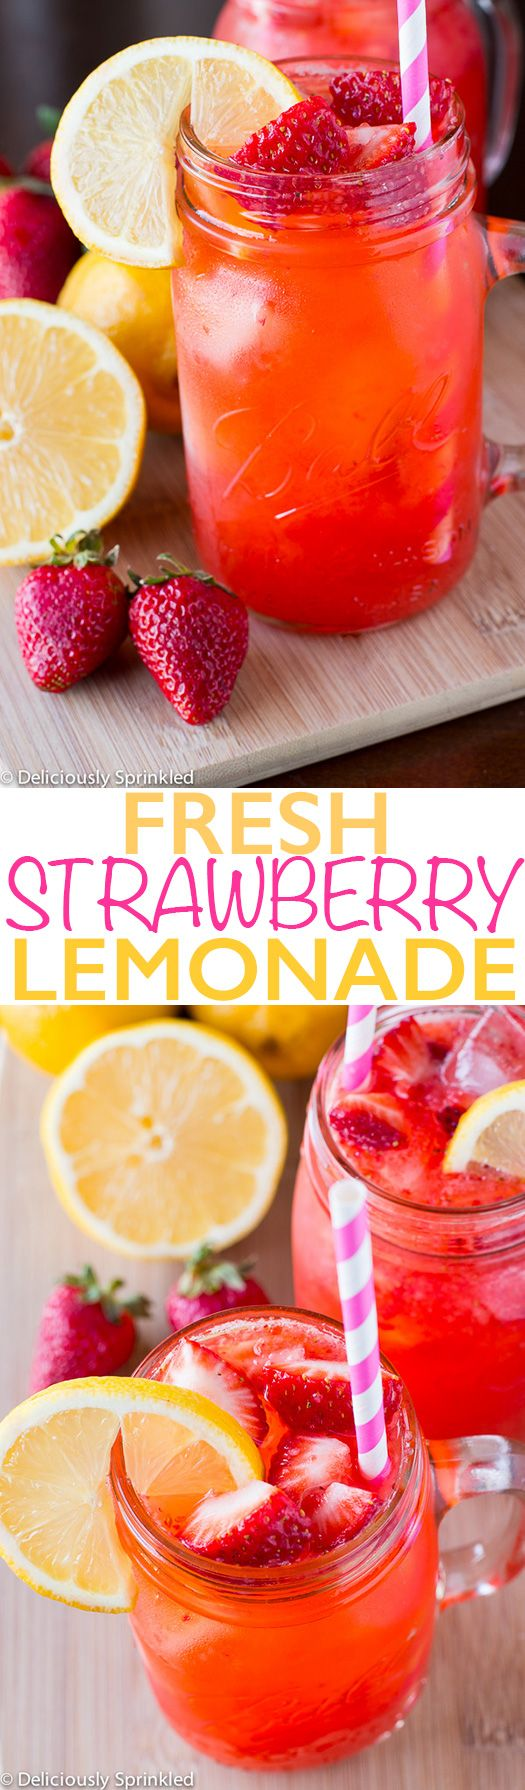 Fresh Strawberry Lemonade 10 mins to make, serves 6-8